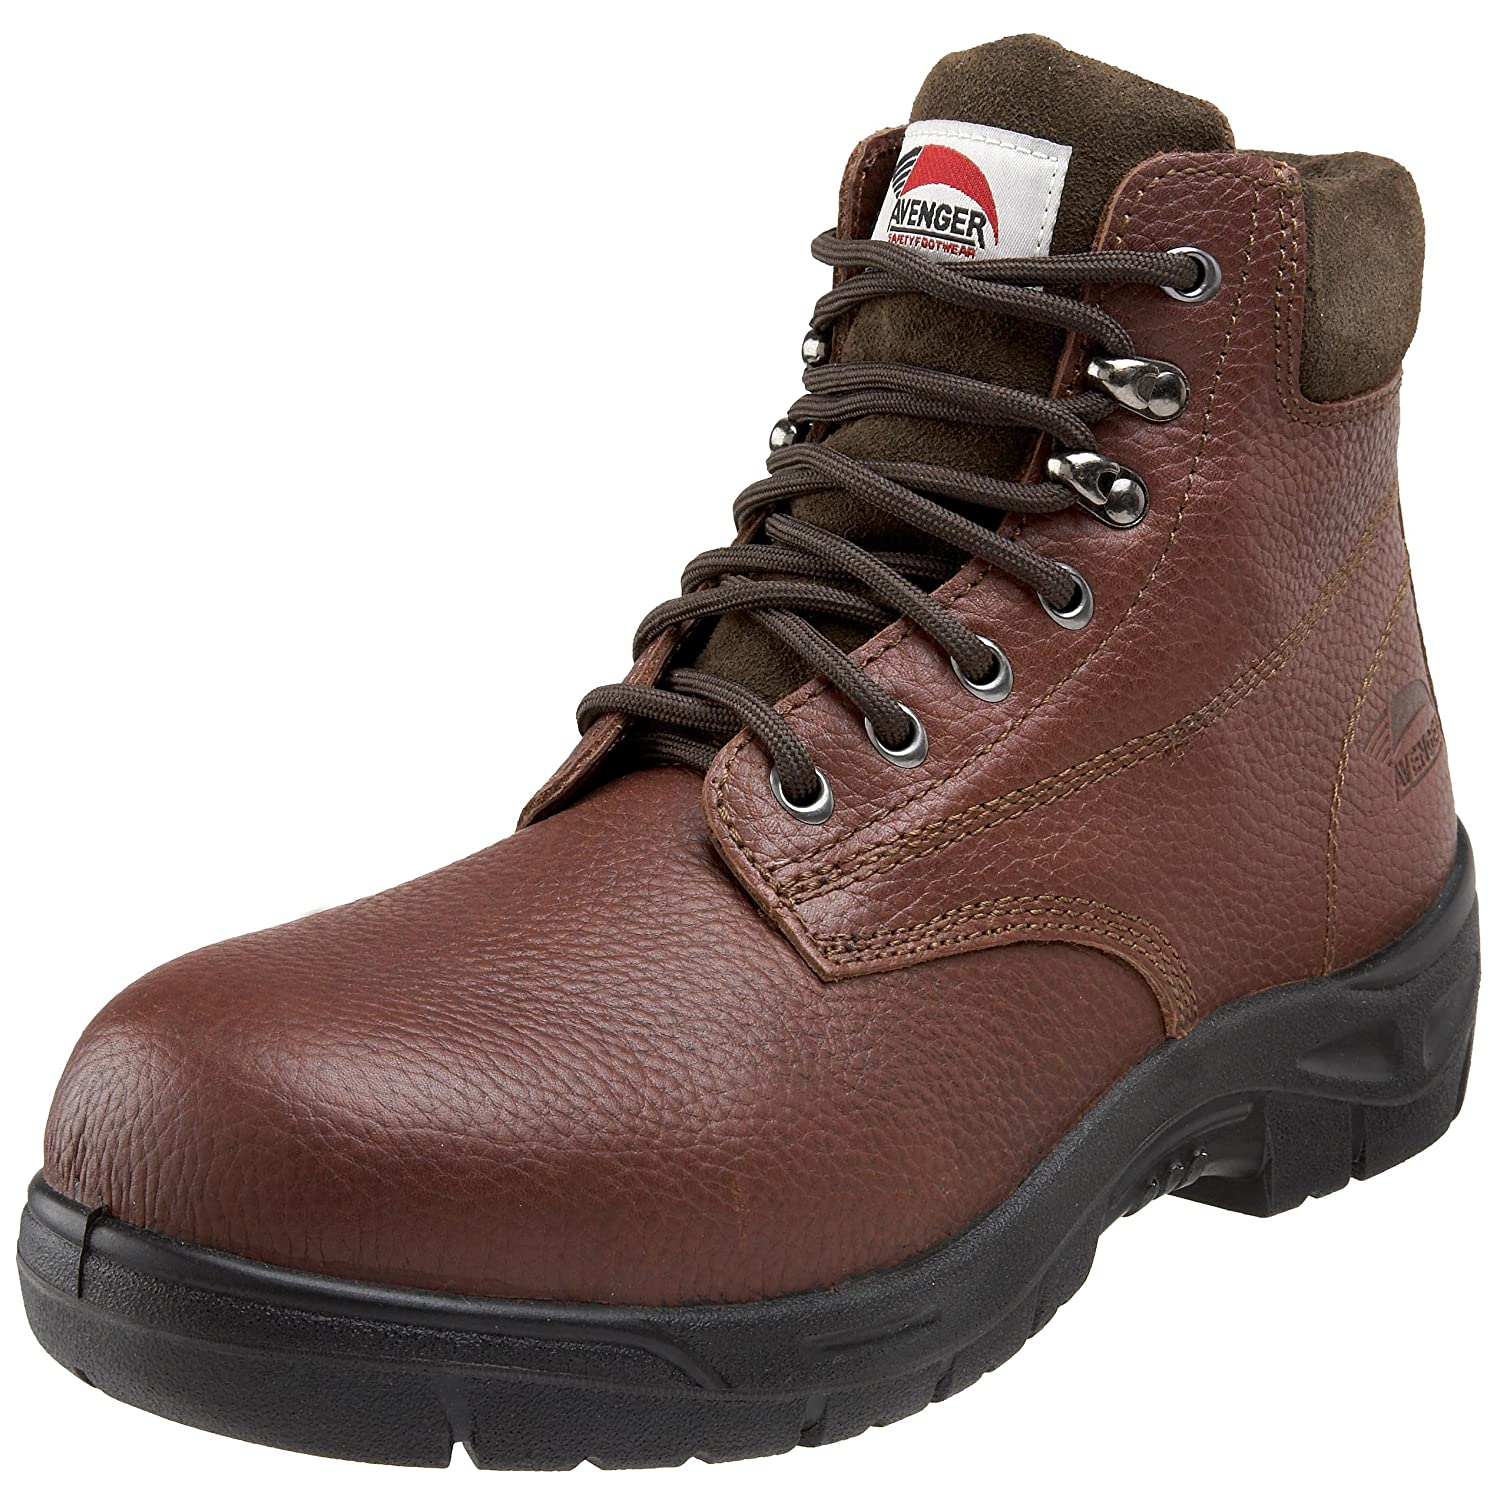 Avenger Safety Footwear メンズ B002WC8B2S 9.5 D(M) US|ブラウン ブラウン 9.5 D(M) US